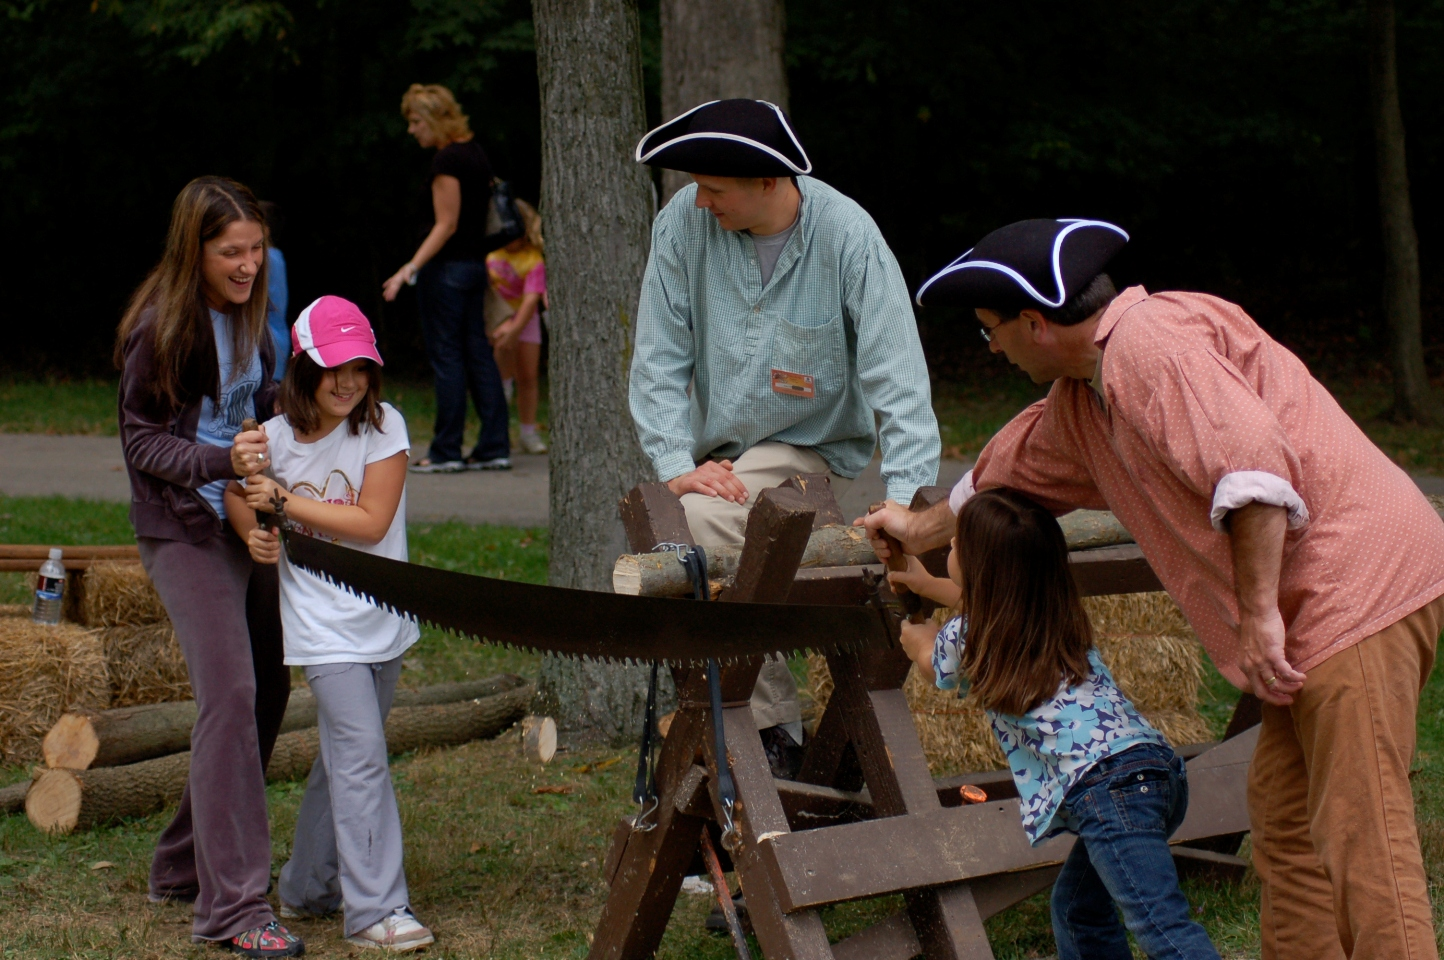 CLEVELAND METROPARKS FREE FALLFEST OFFERS A GLIMPSE INTO LIFE  DURING THE DAYS OF THE PIONEERS